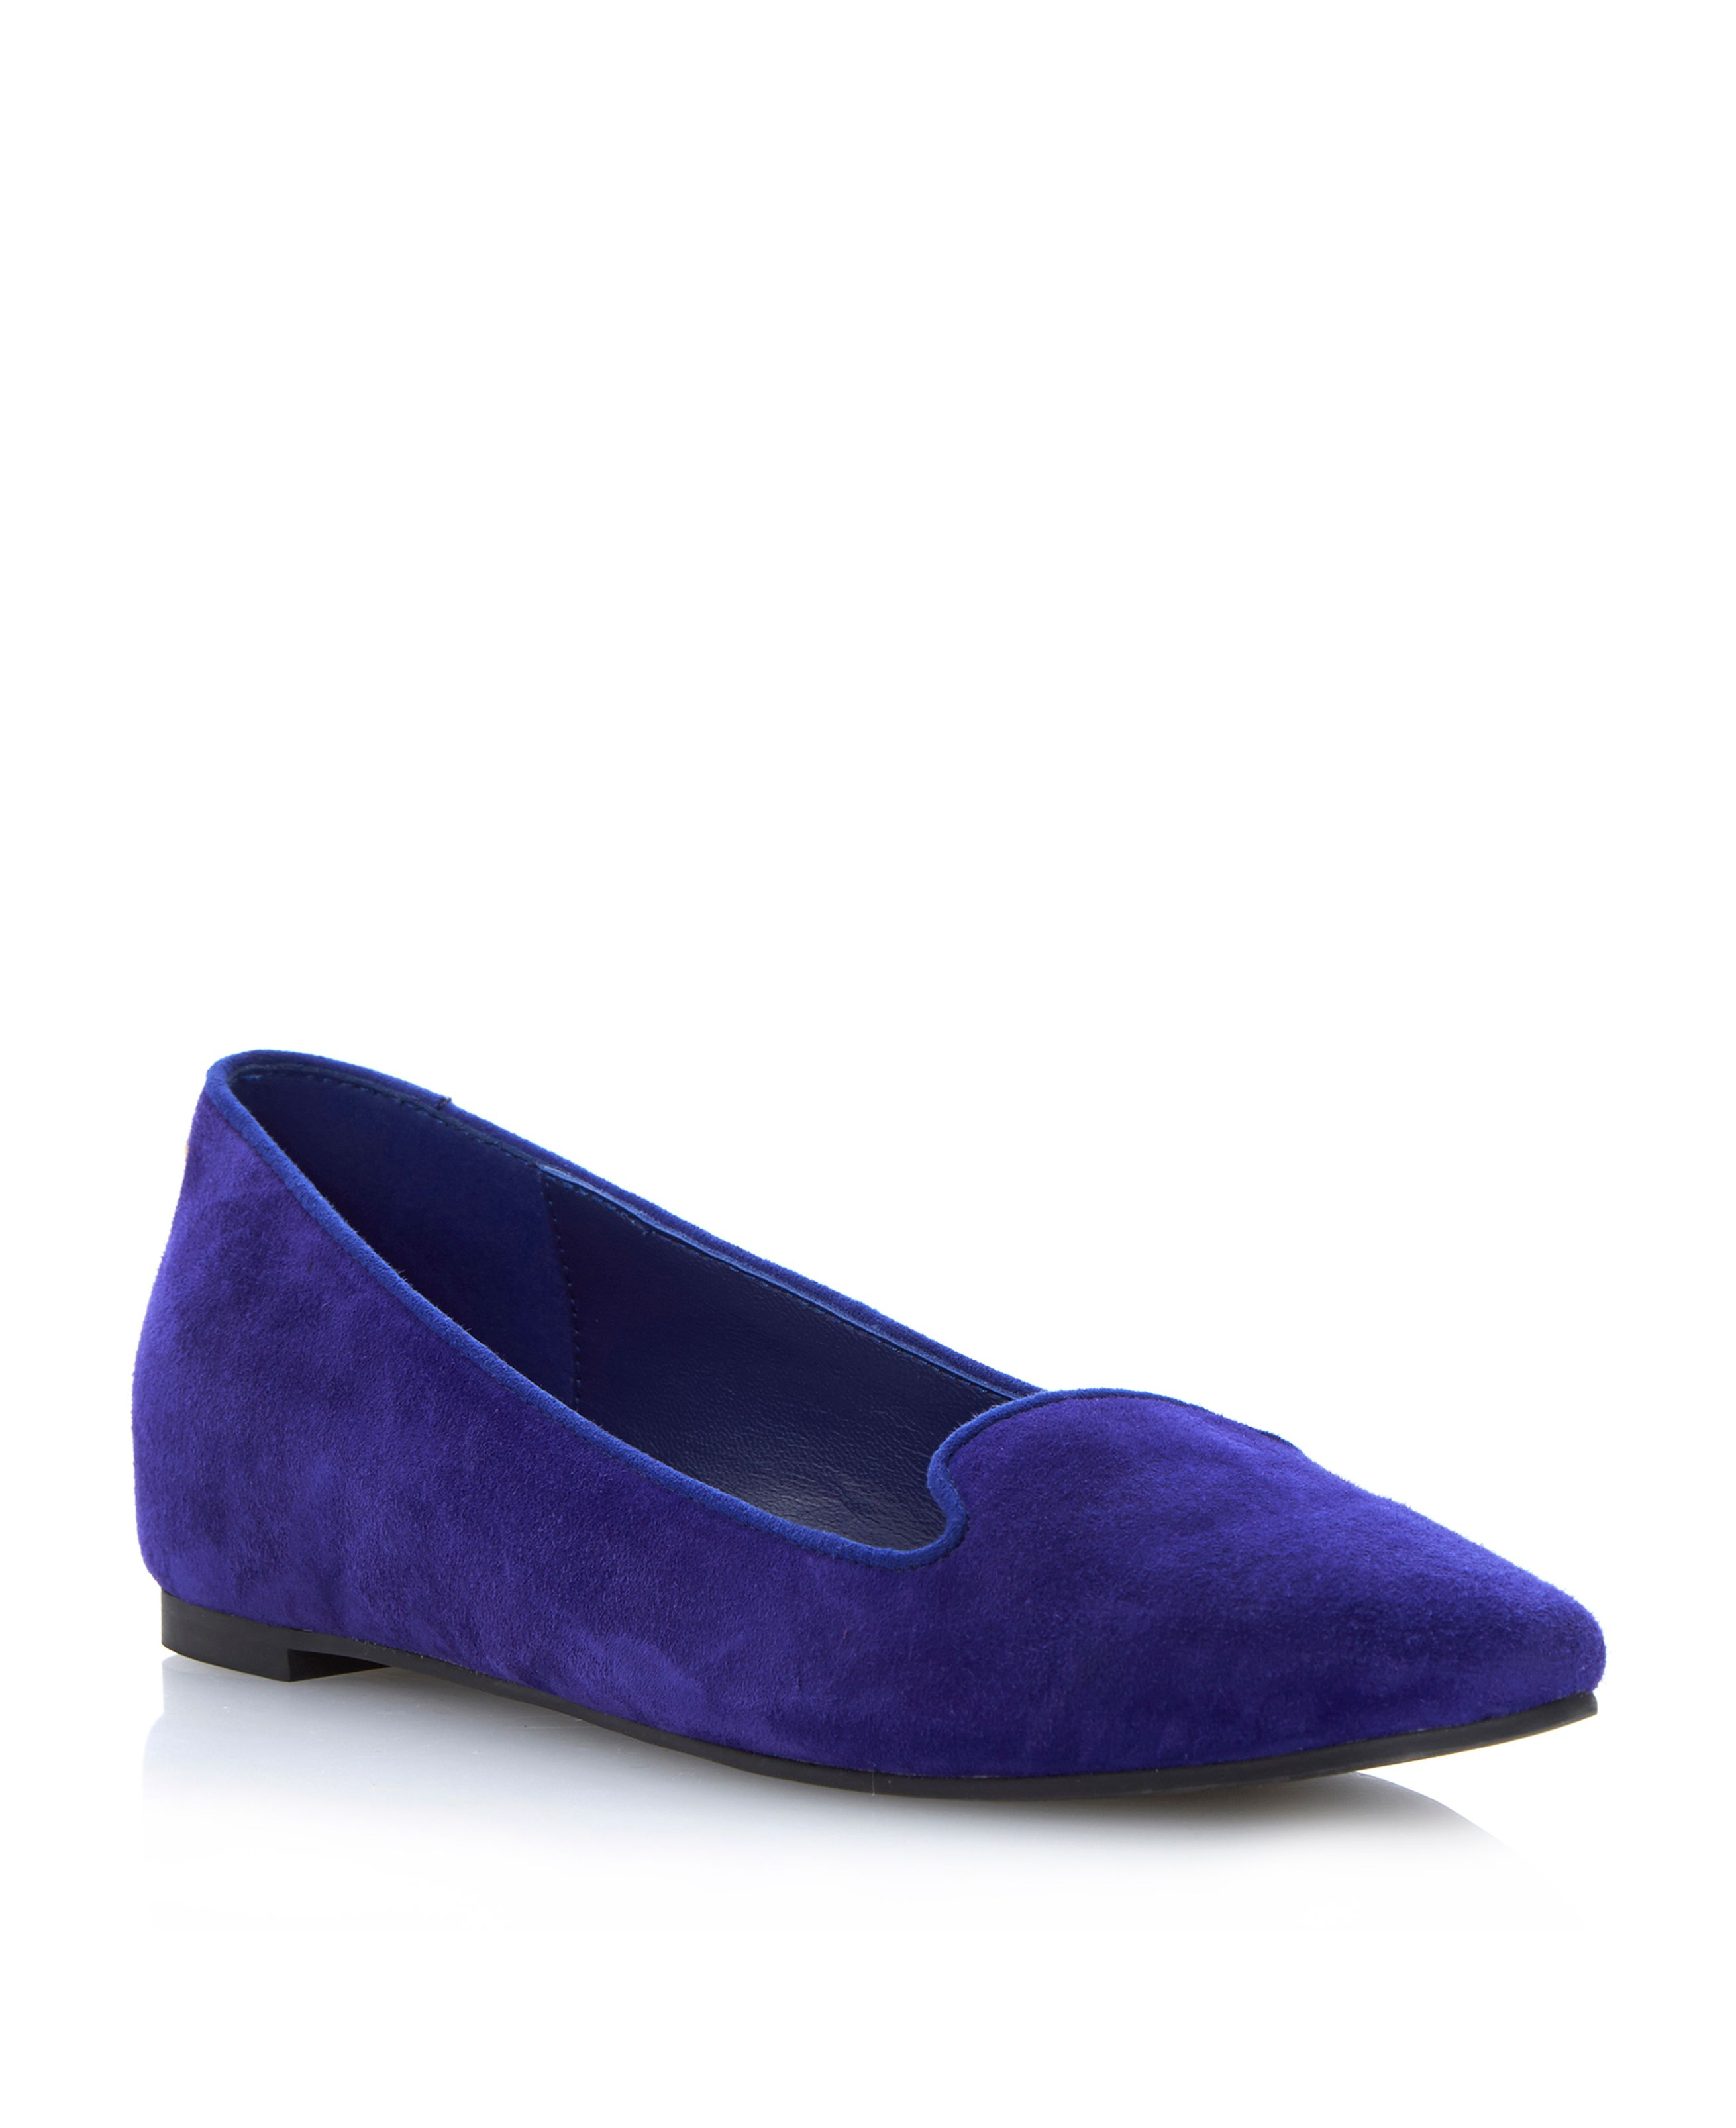 Luiza suede wedged slipper shoes